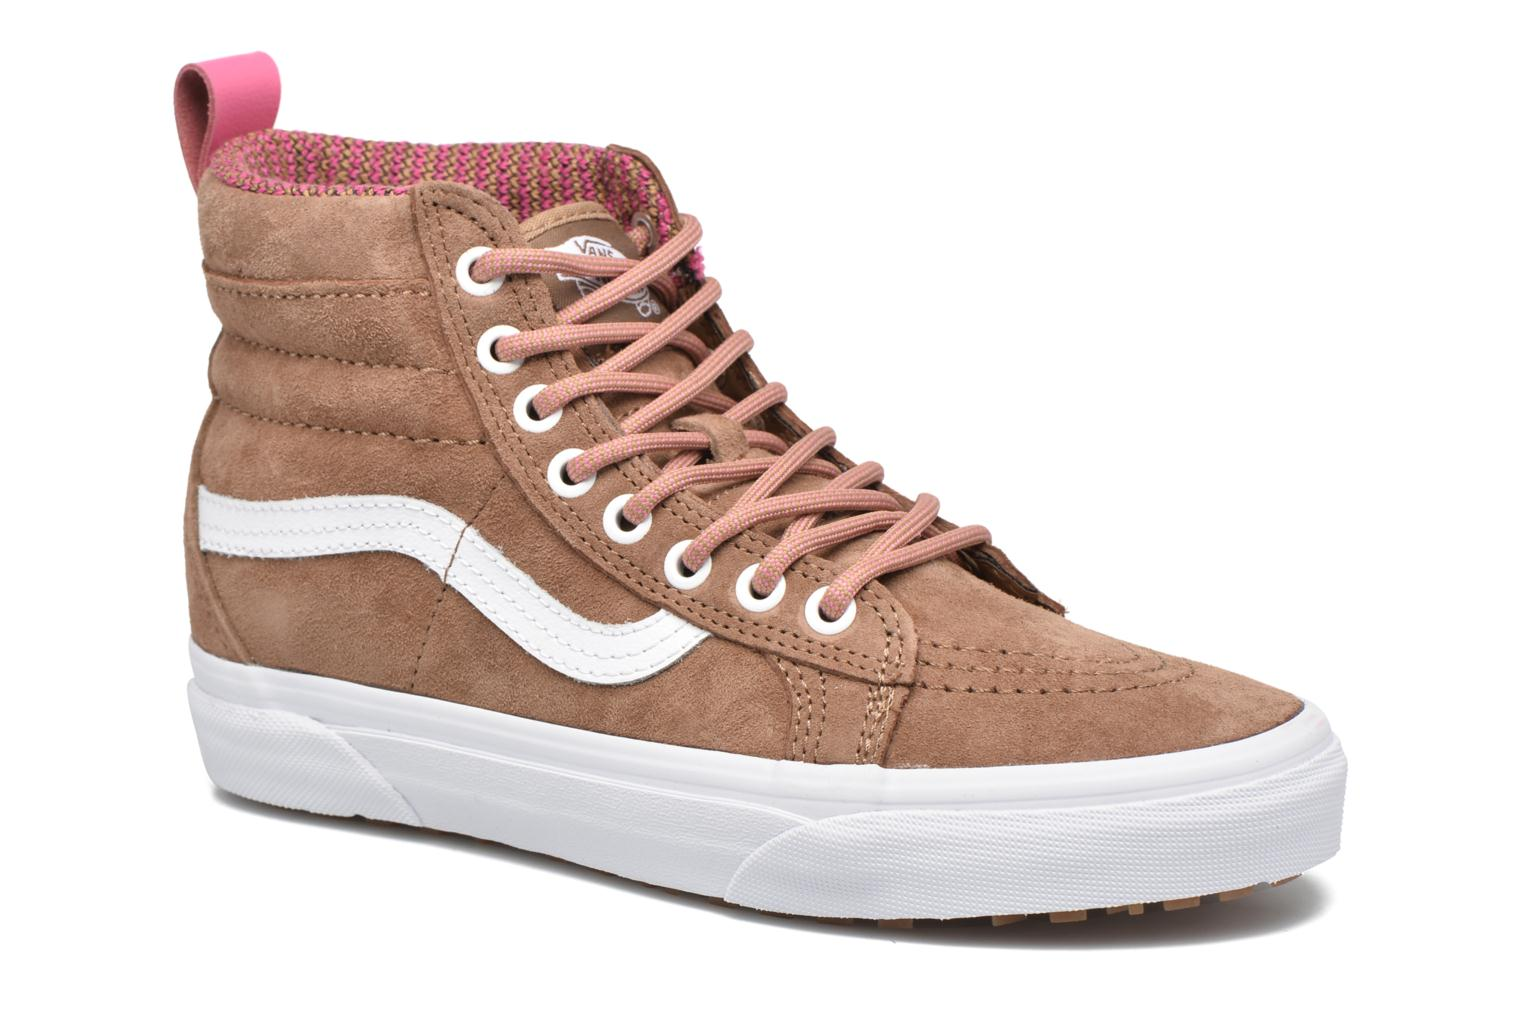 SK8-Hi MTE W (Mte) Toasted Coconut/True White